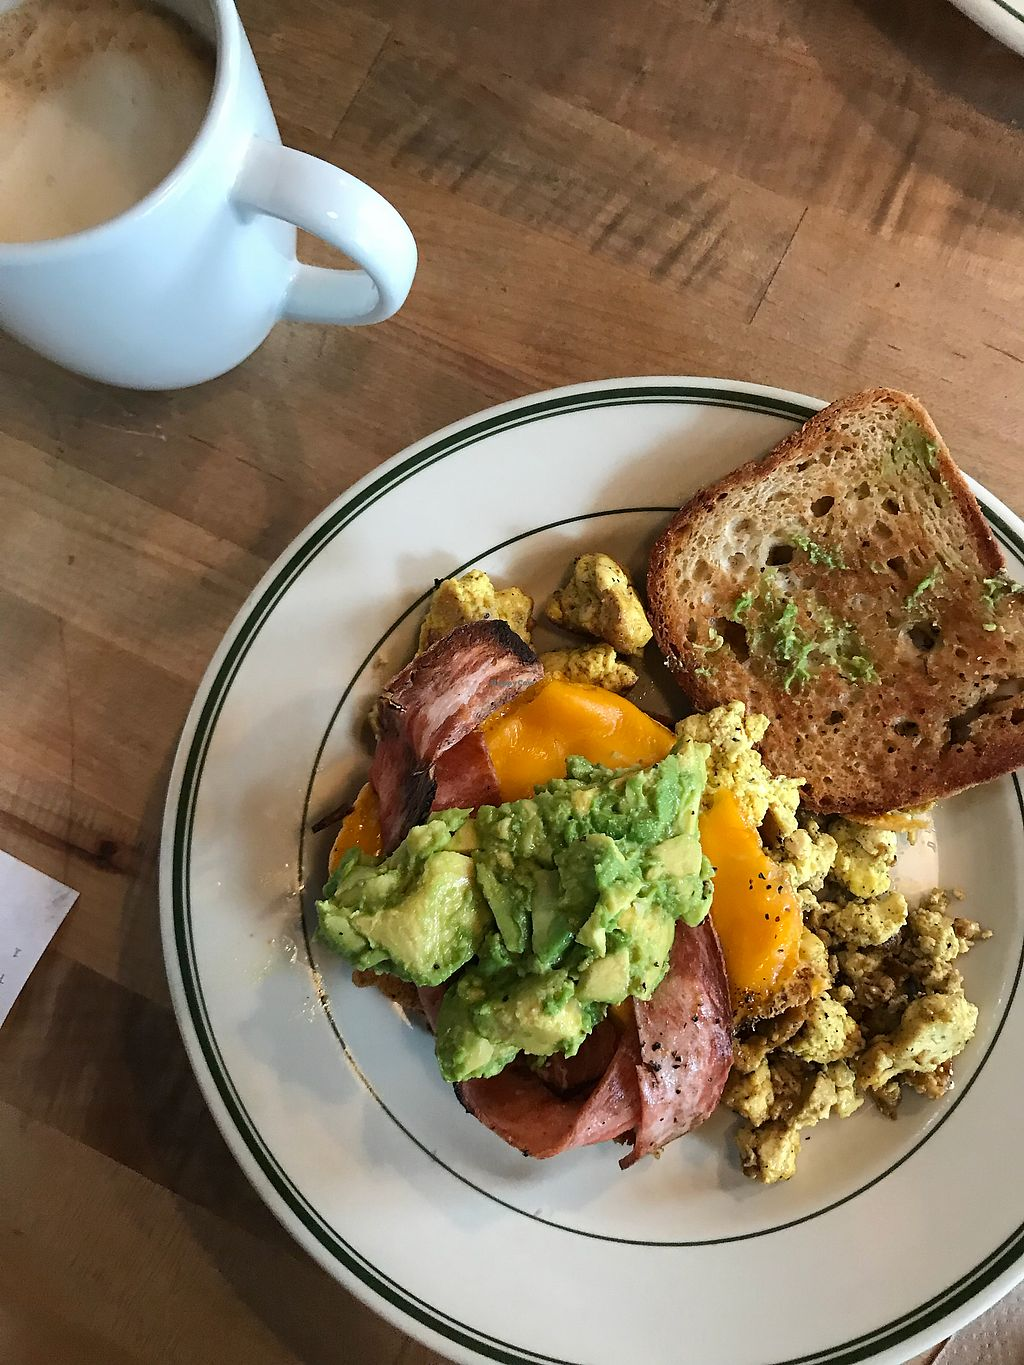 "Photo of The Butcher's Son  by <a href=""/members/profile/Mar%C3%ADaFern%C3%A1ndez"">MaríaFernández</a> <br/>From the brunch menu: #thisismyaddiction (gf option) <br/> March 19, 2018  - <a href='/contact/abuse/image/70334/372712'>Report</a>"